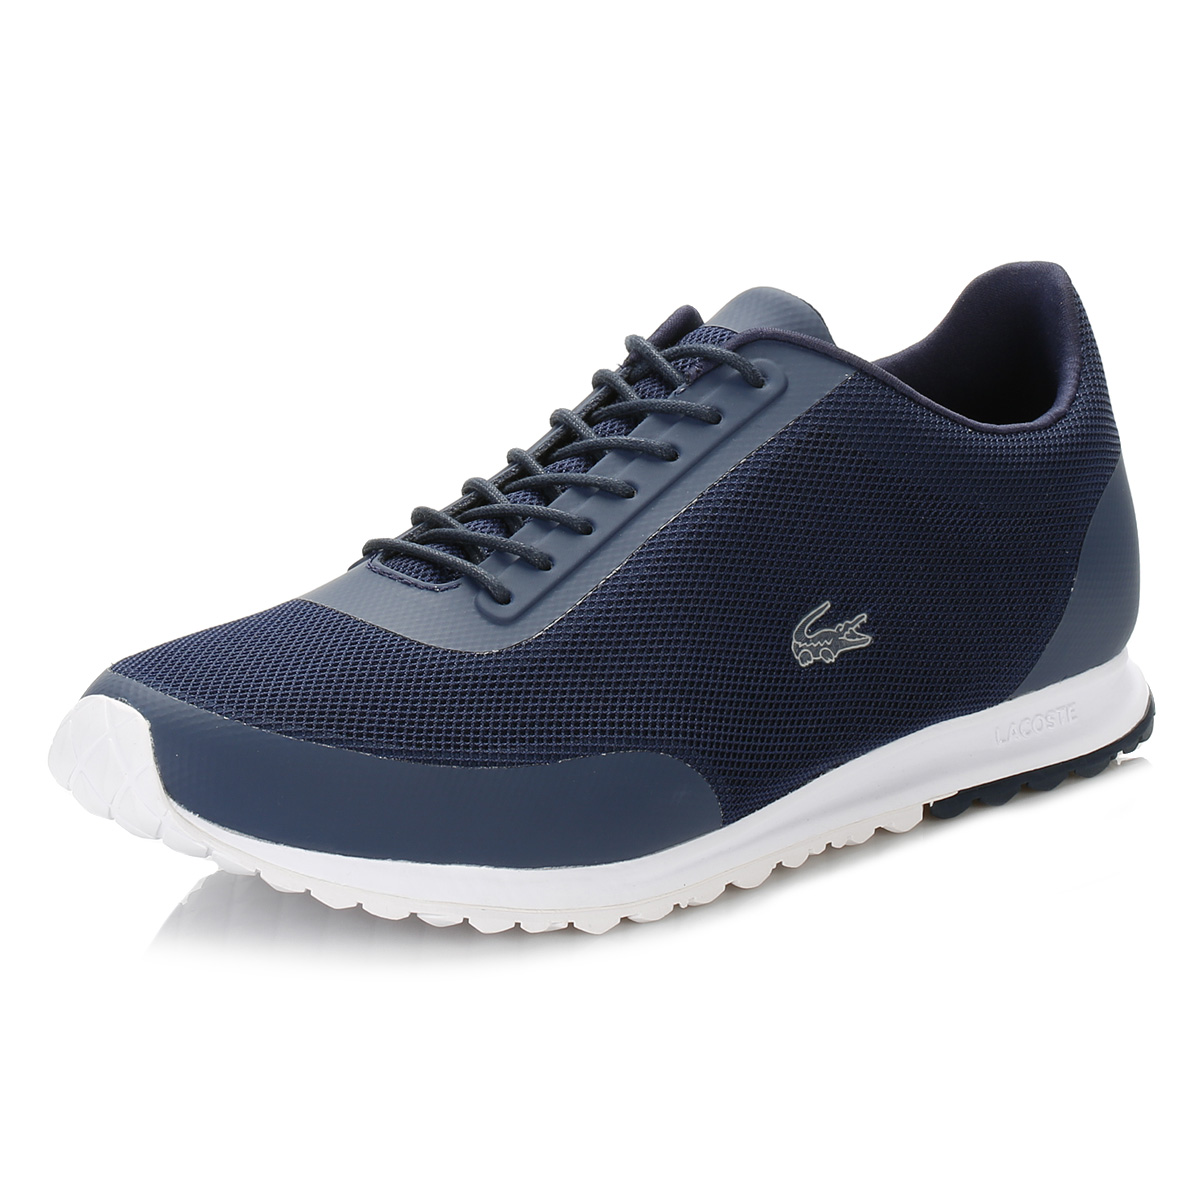 8e69121a6 Details about Lacoste Womens Navy Blue Helaine Runner 116 3 SPW Trainers  Casual Sports Shoes